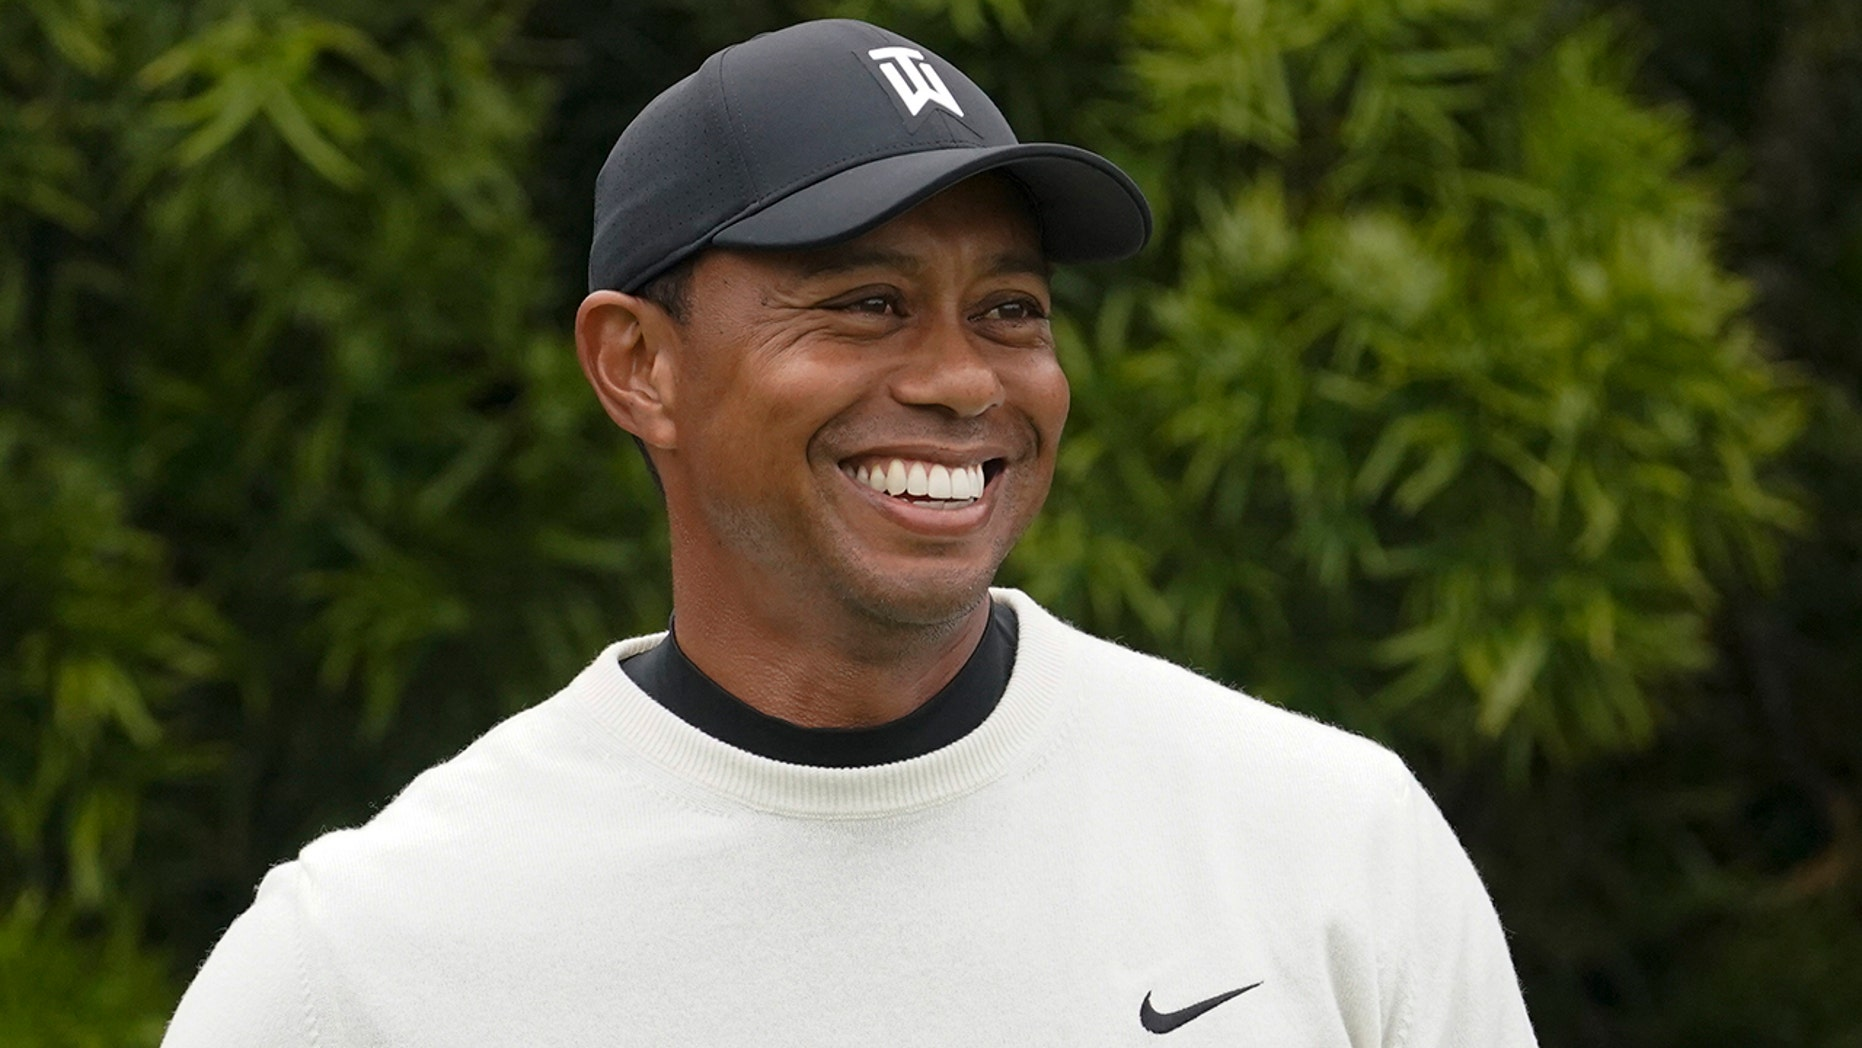 FILE - In this June 12, 2019, file photo, Tiger Woods smiles on the 12th hole during a practice round for the U.S. Open golf tournament in Pebble Beach, Calif. Woods will take part in a Japan Skins game on Oct. 21 that will be shown live worldwide by Discovery-owned GOLFTV. (AP Photo/David J. Phillip, File)